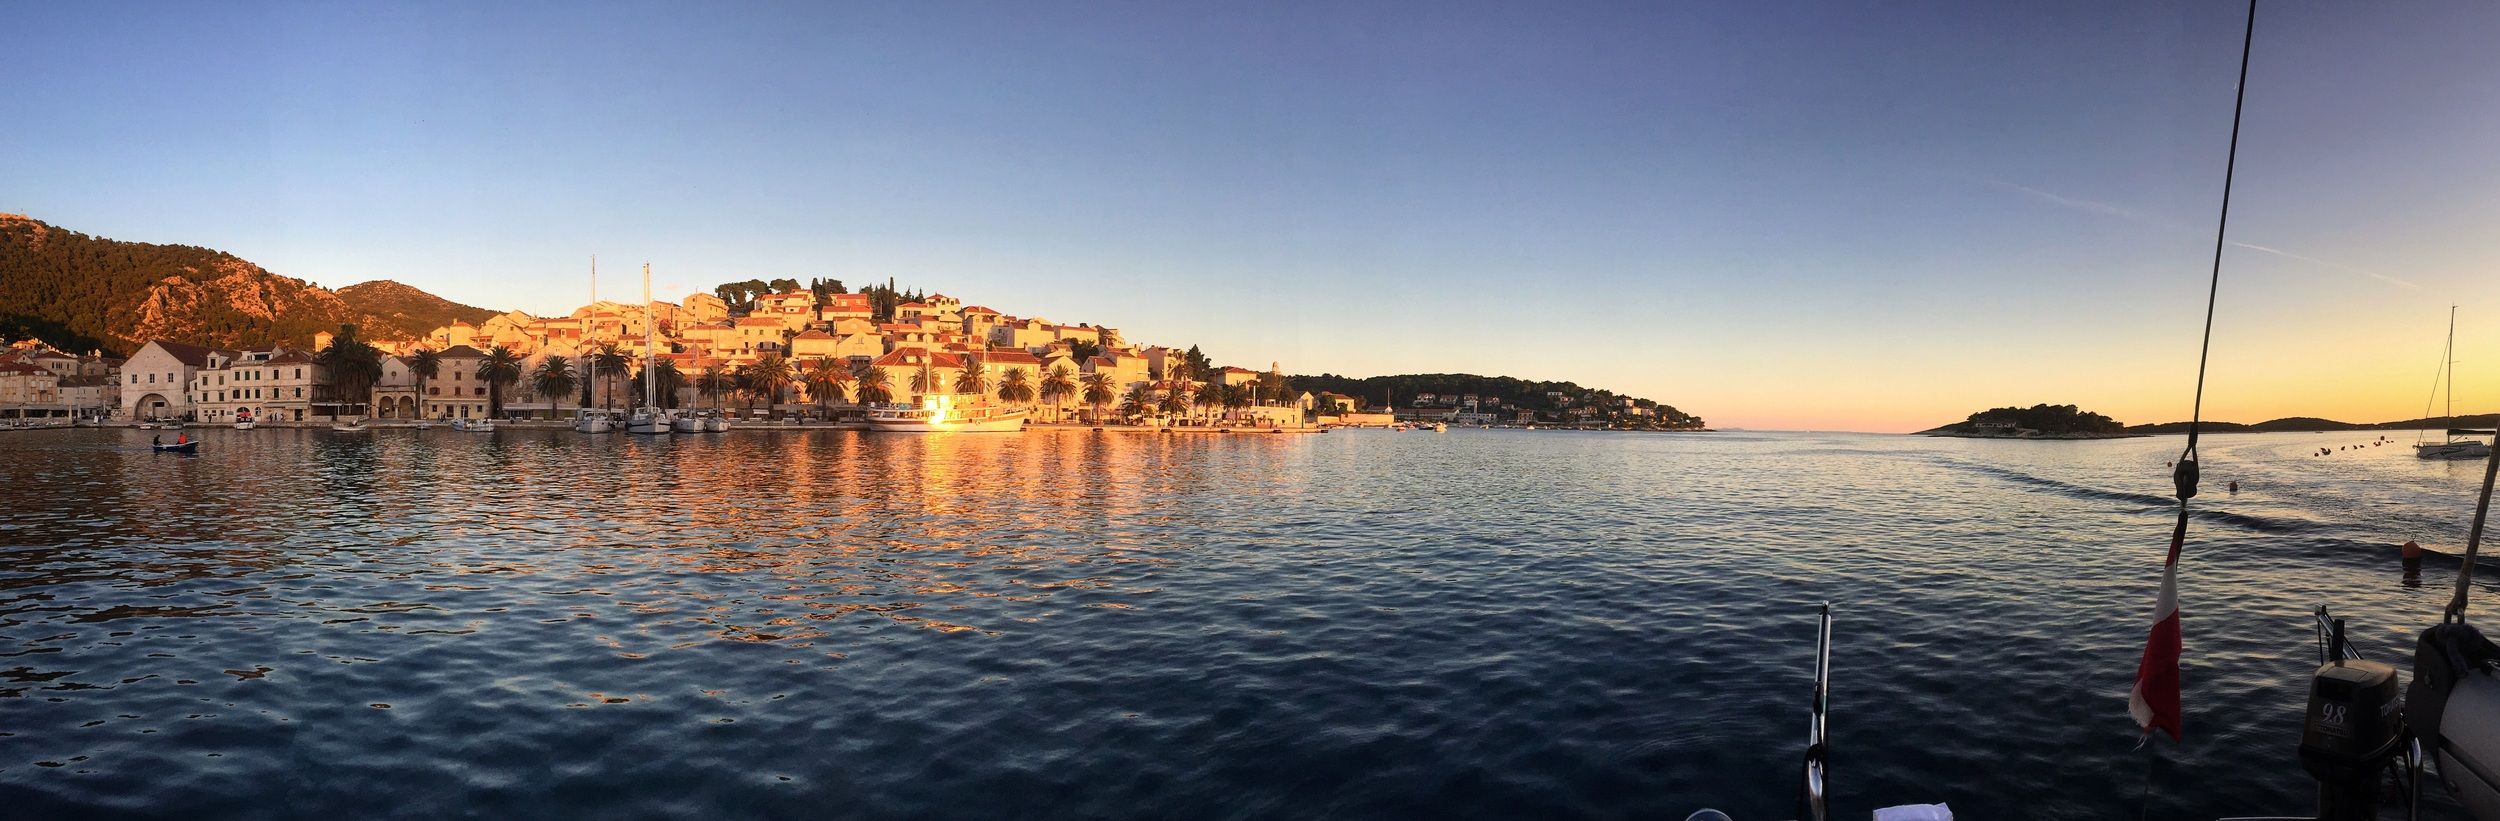 Hvar at sunset